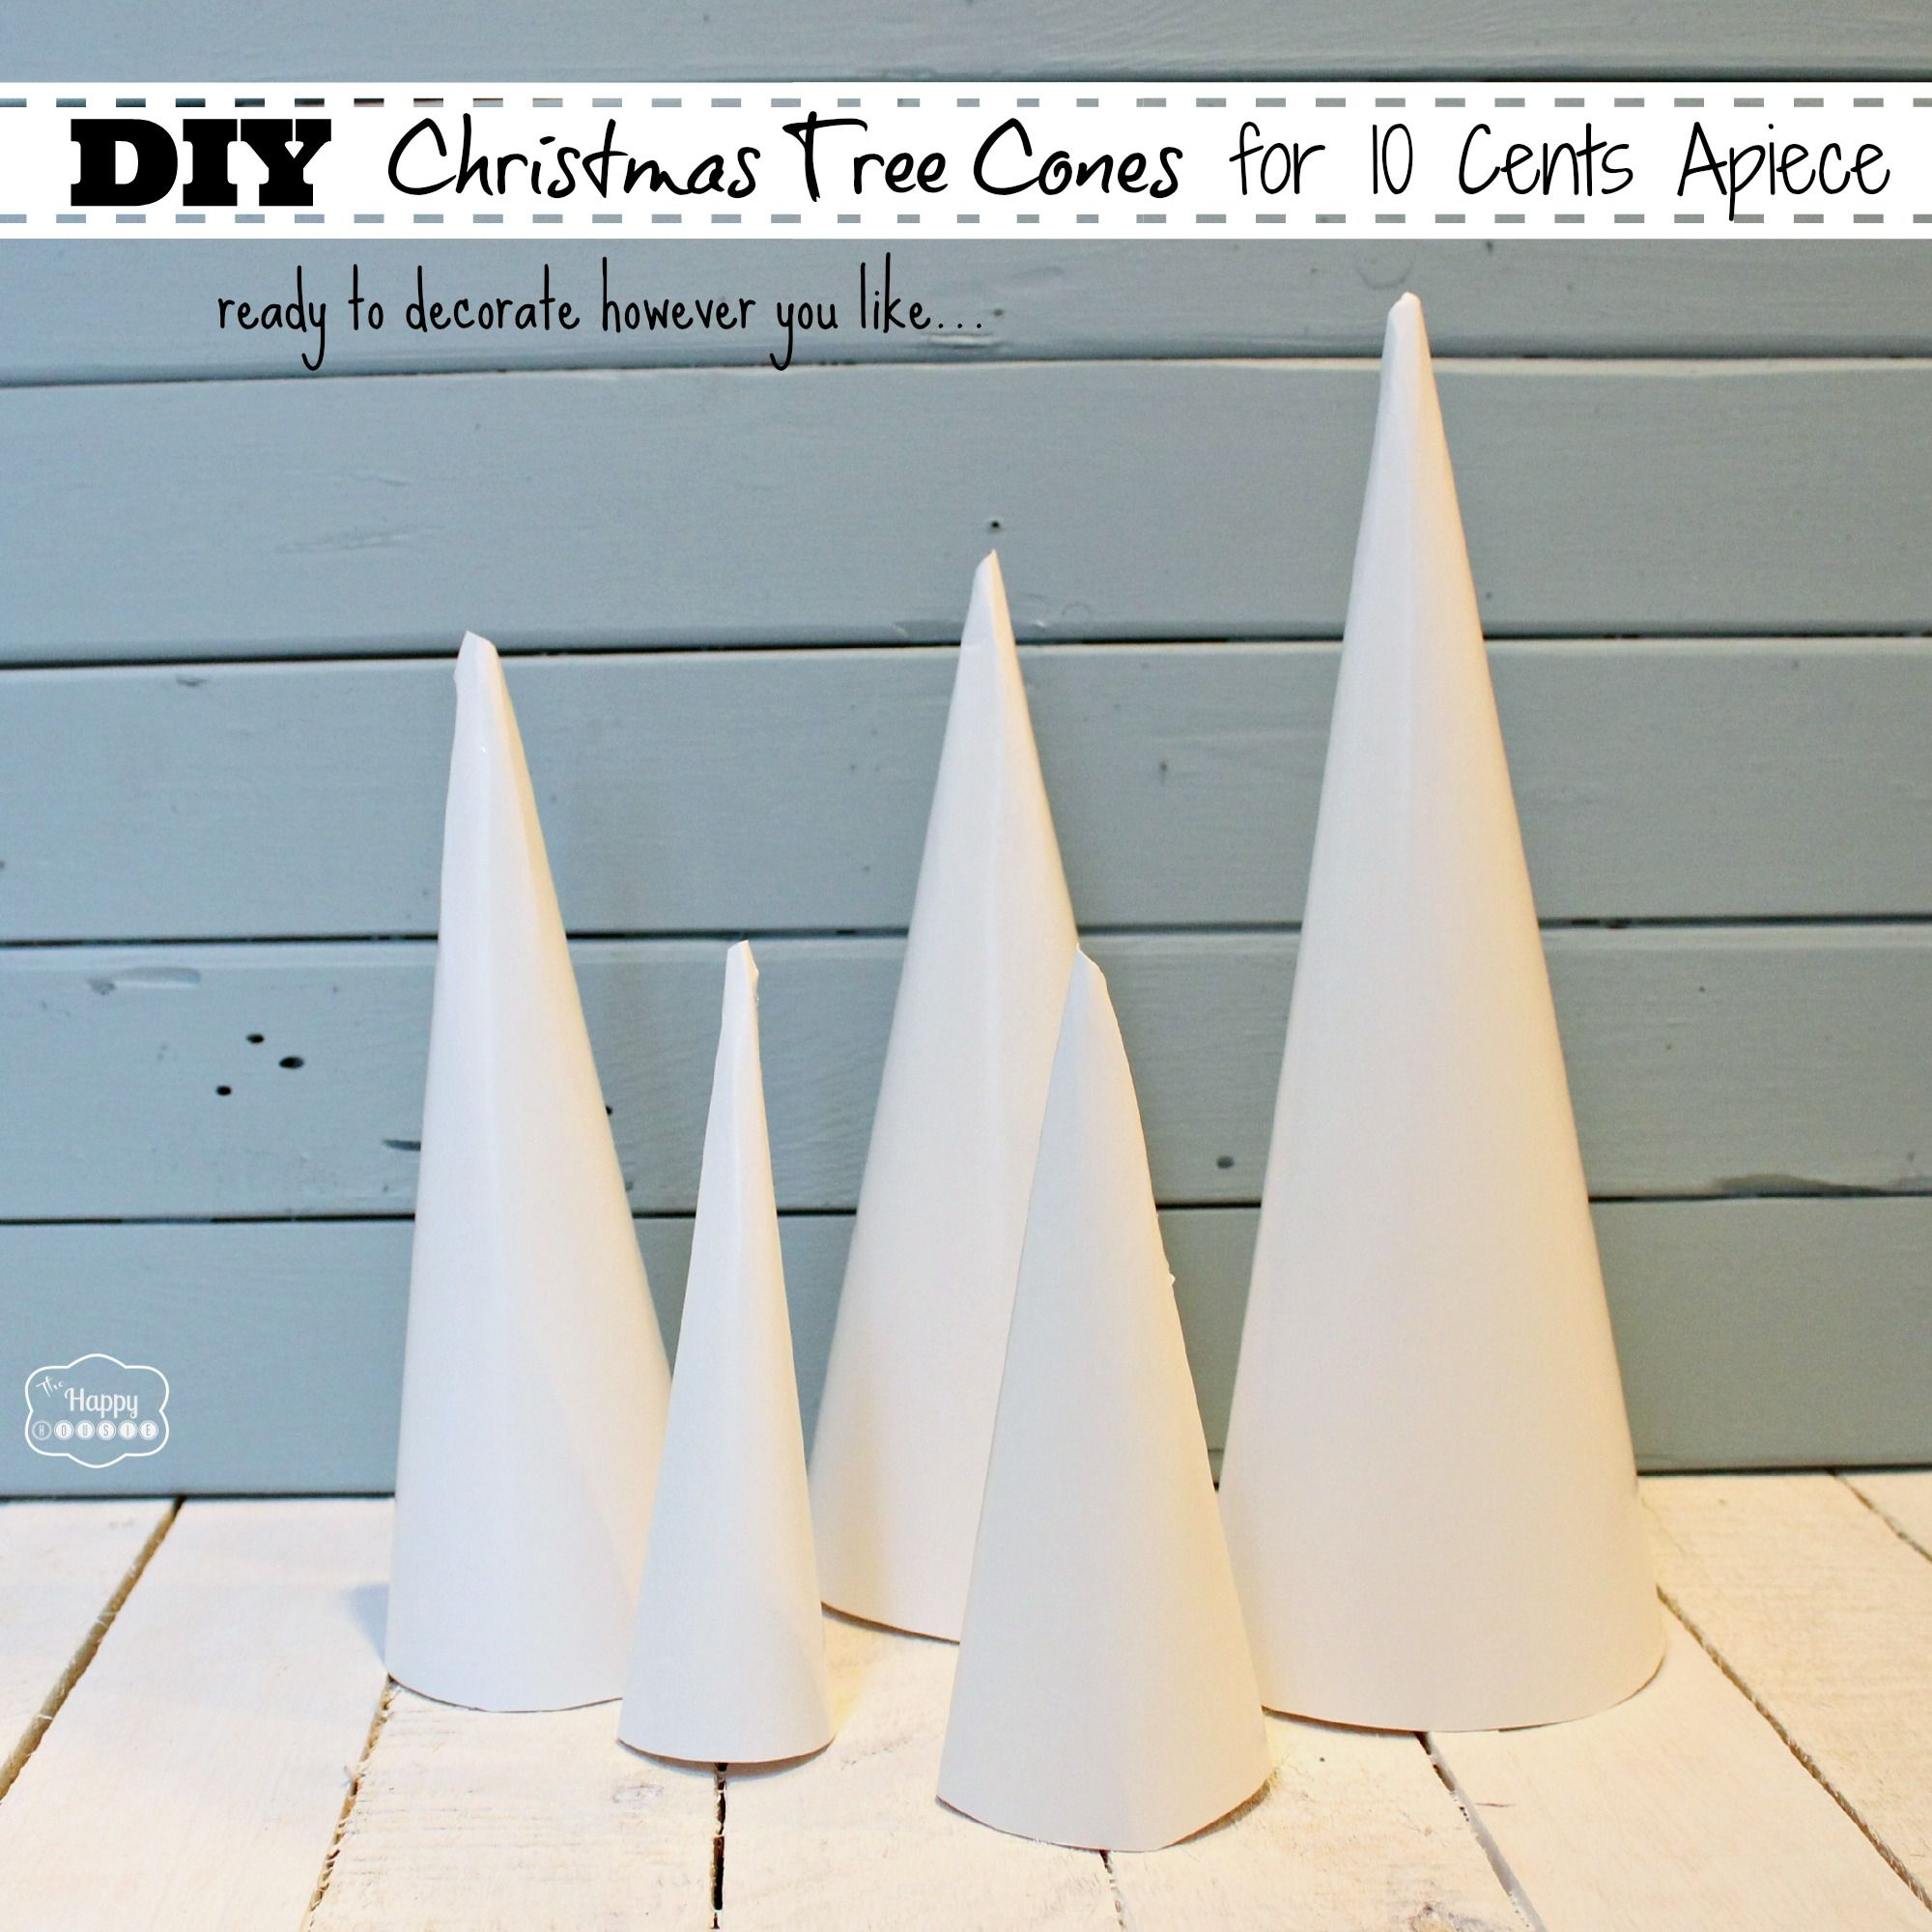 How to sew a christmas decoration - How To Make Christmas Tree Cone Craft Forms For 10 Cents Apiece